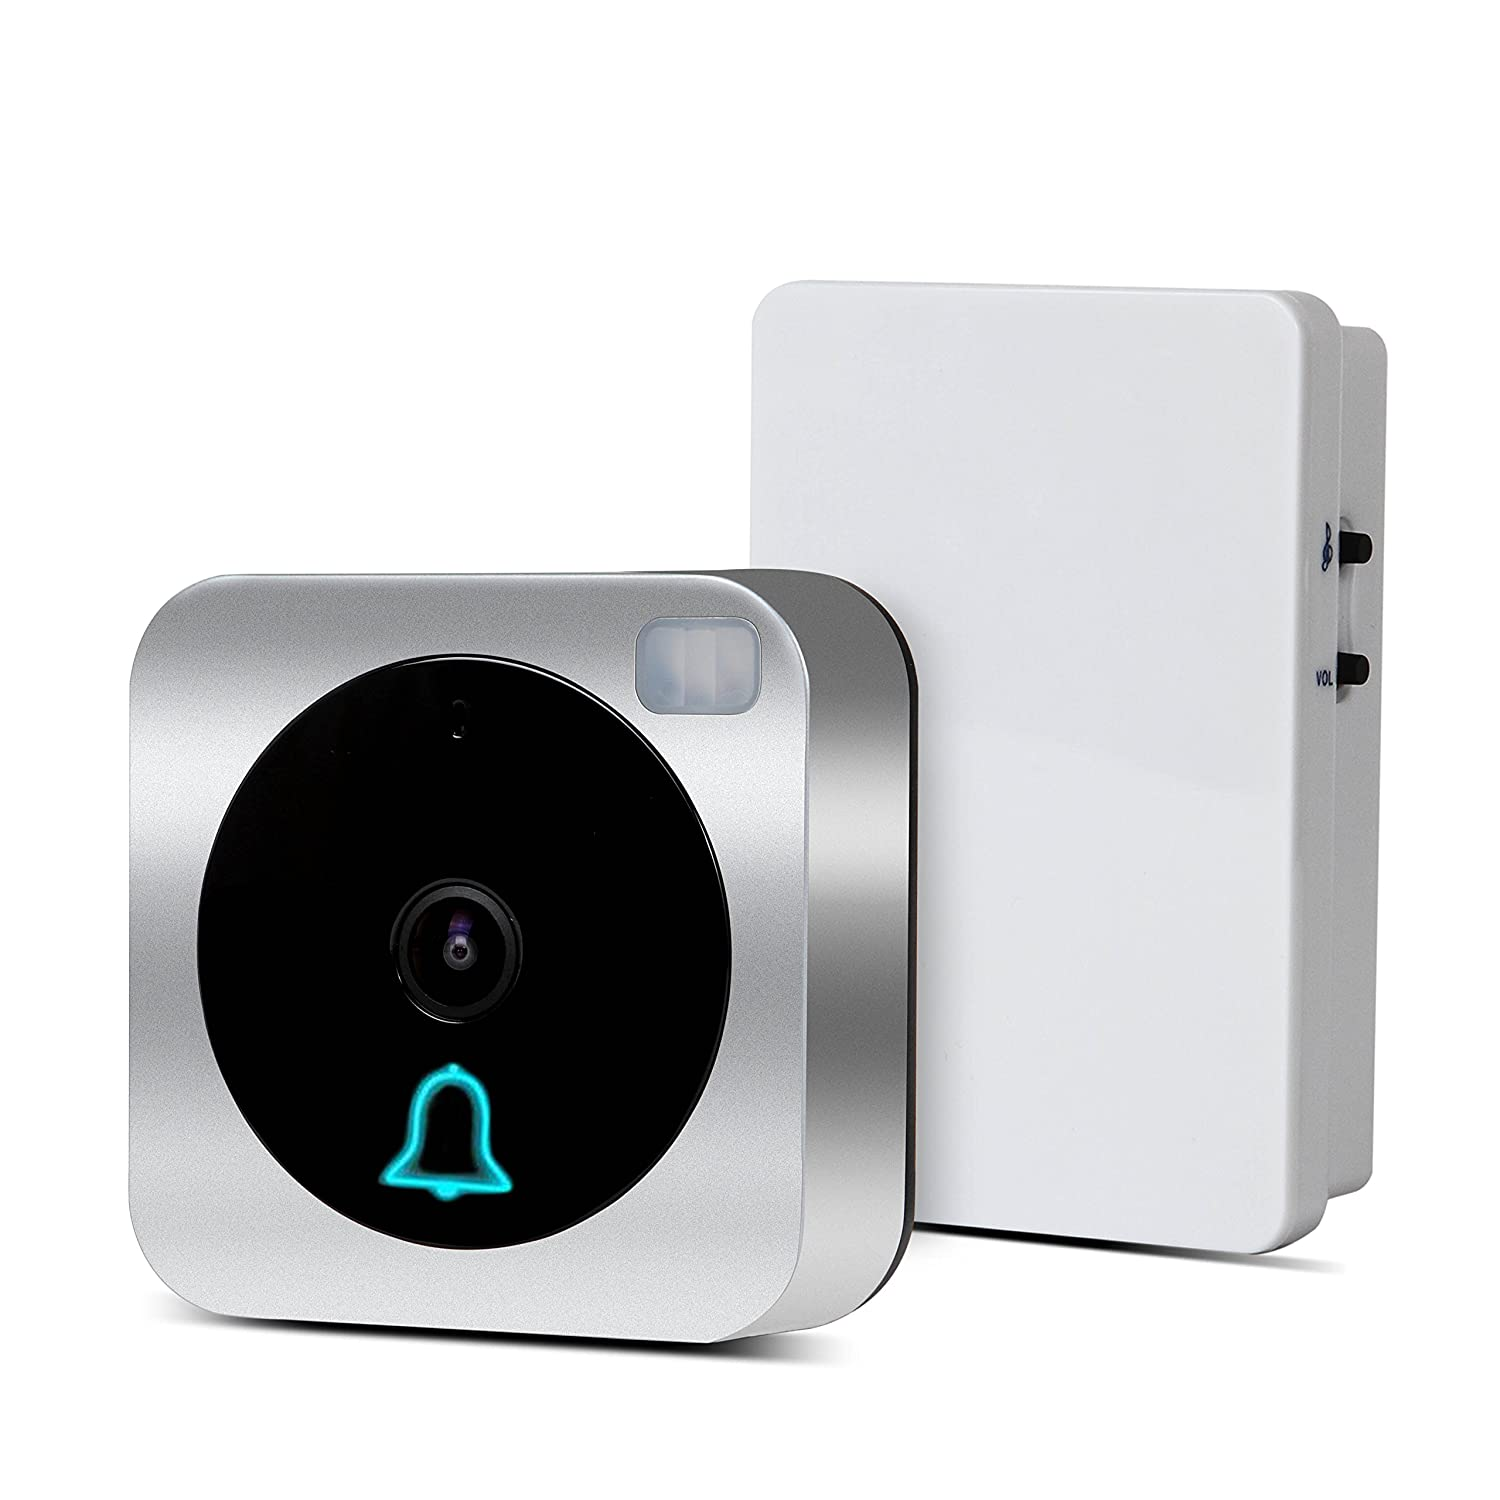 VueBell WIFI HD Camera Video Doorbell with Motion Detection Two Way Audio and Wireless Door Bell Chime Included(Hard wired version) - - Amazon .com  sc 1 st  Amazon.com & VueBell WIFI HD Camera Video Doorbell with Motion Detection Two ...